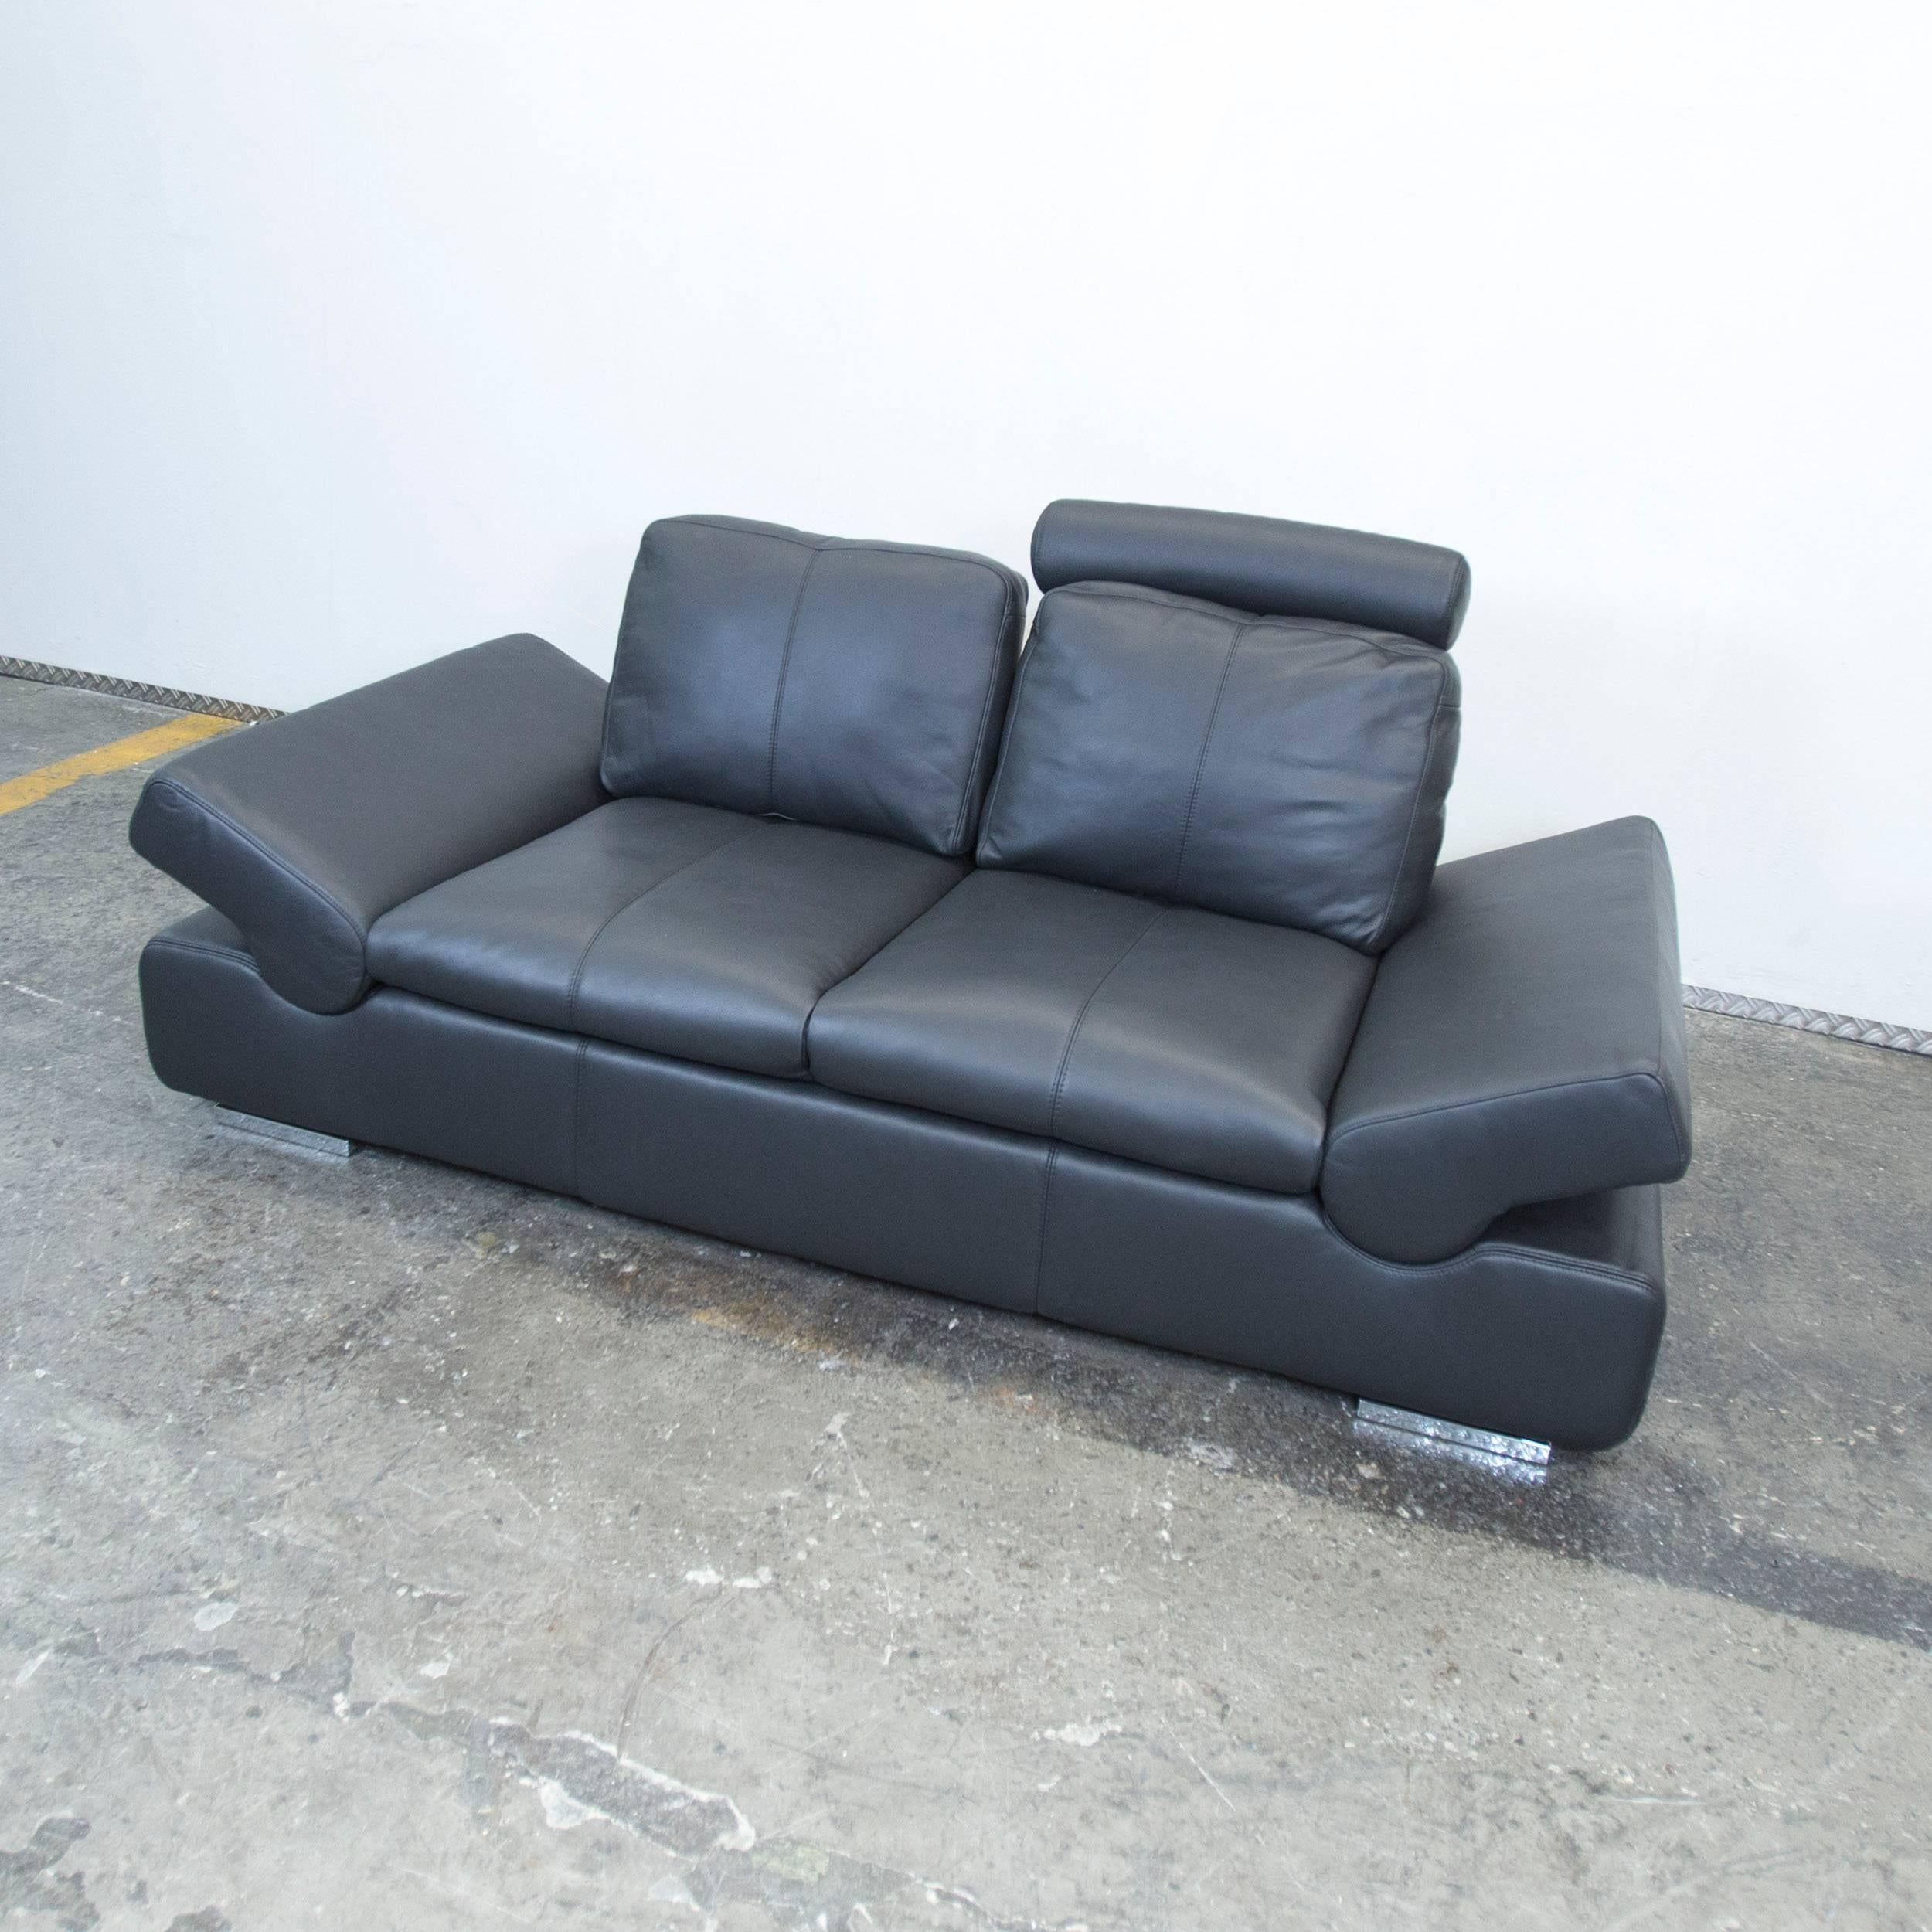 Musterring Ledersofa Musterring Linea Designer Leather Sofa Black Three-seat Couch Function At 1stdibs